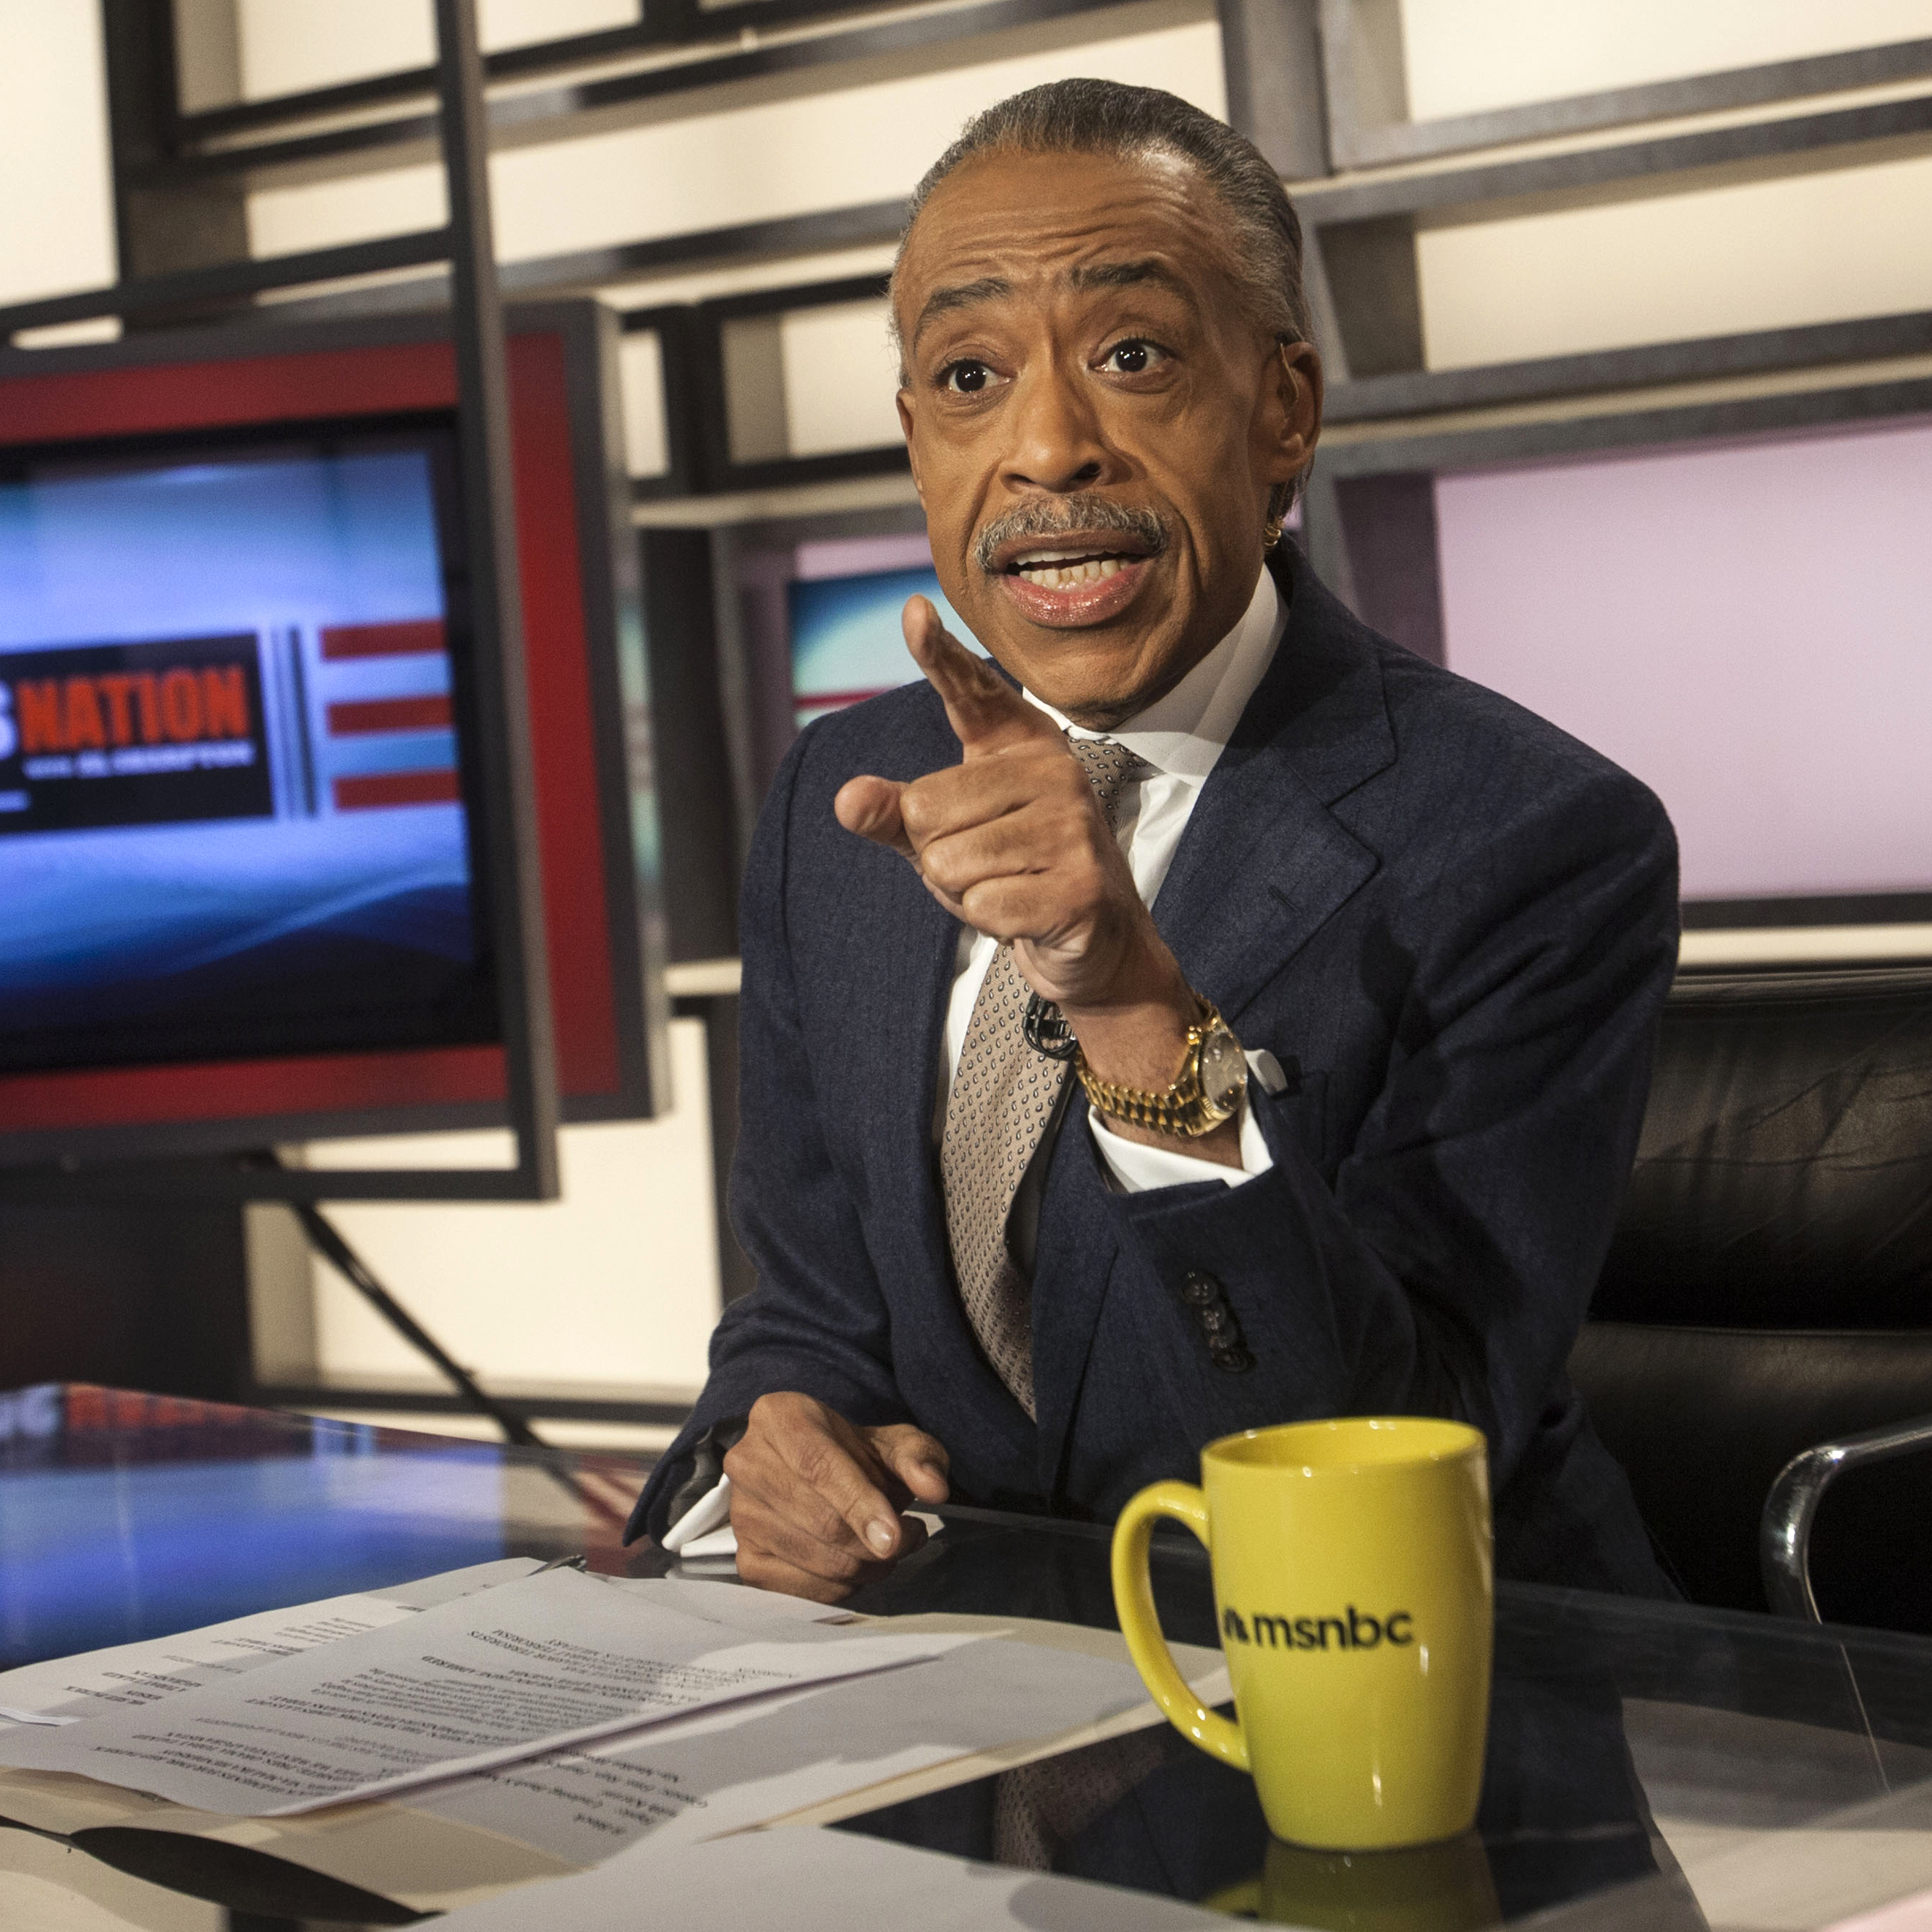 Sharpton hosts his show PoliticsNation, at the MSNBC studios in New York.